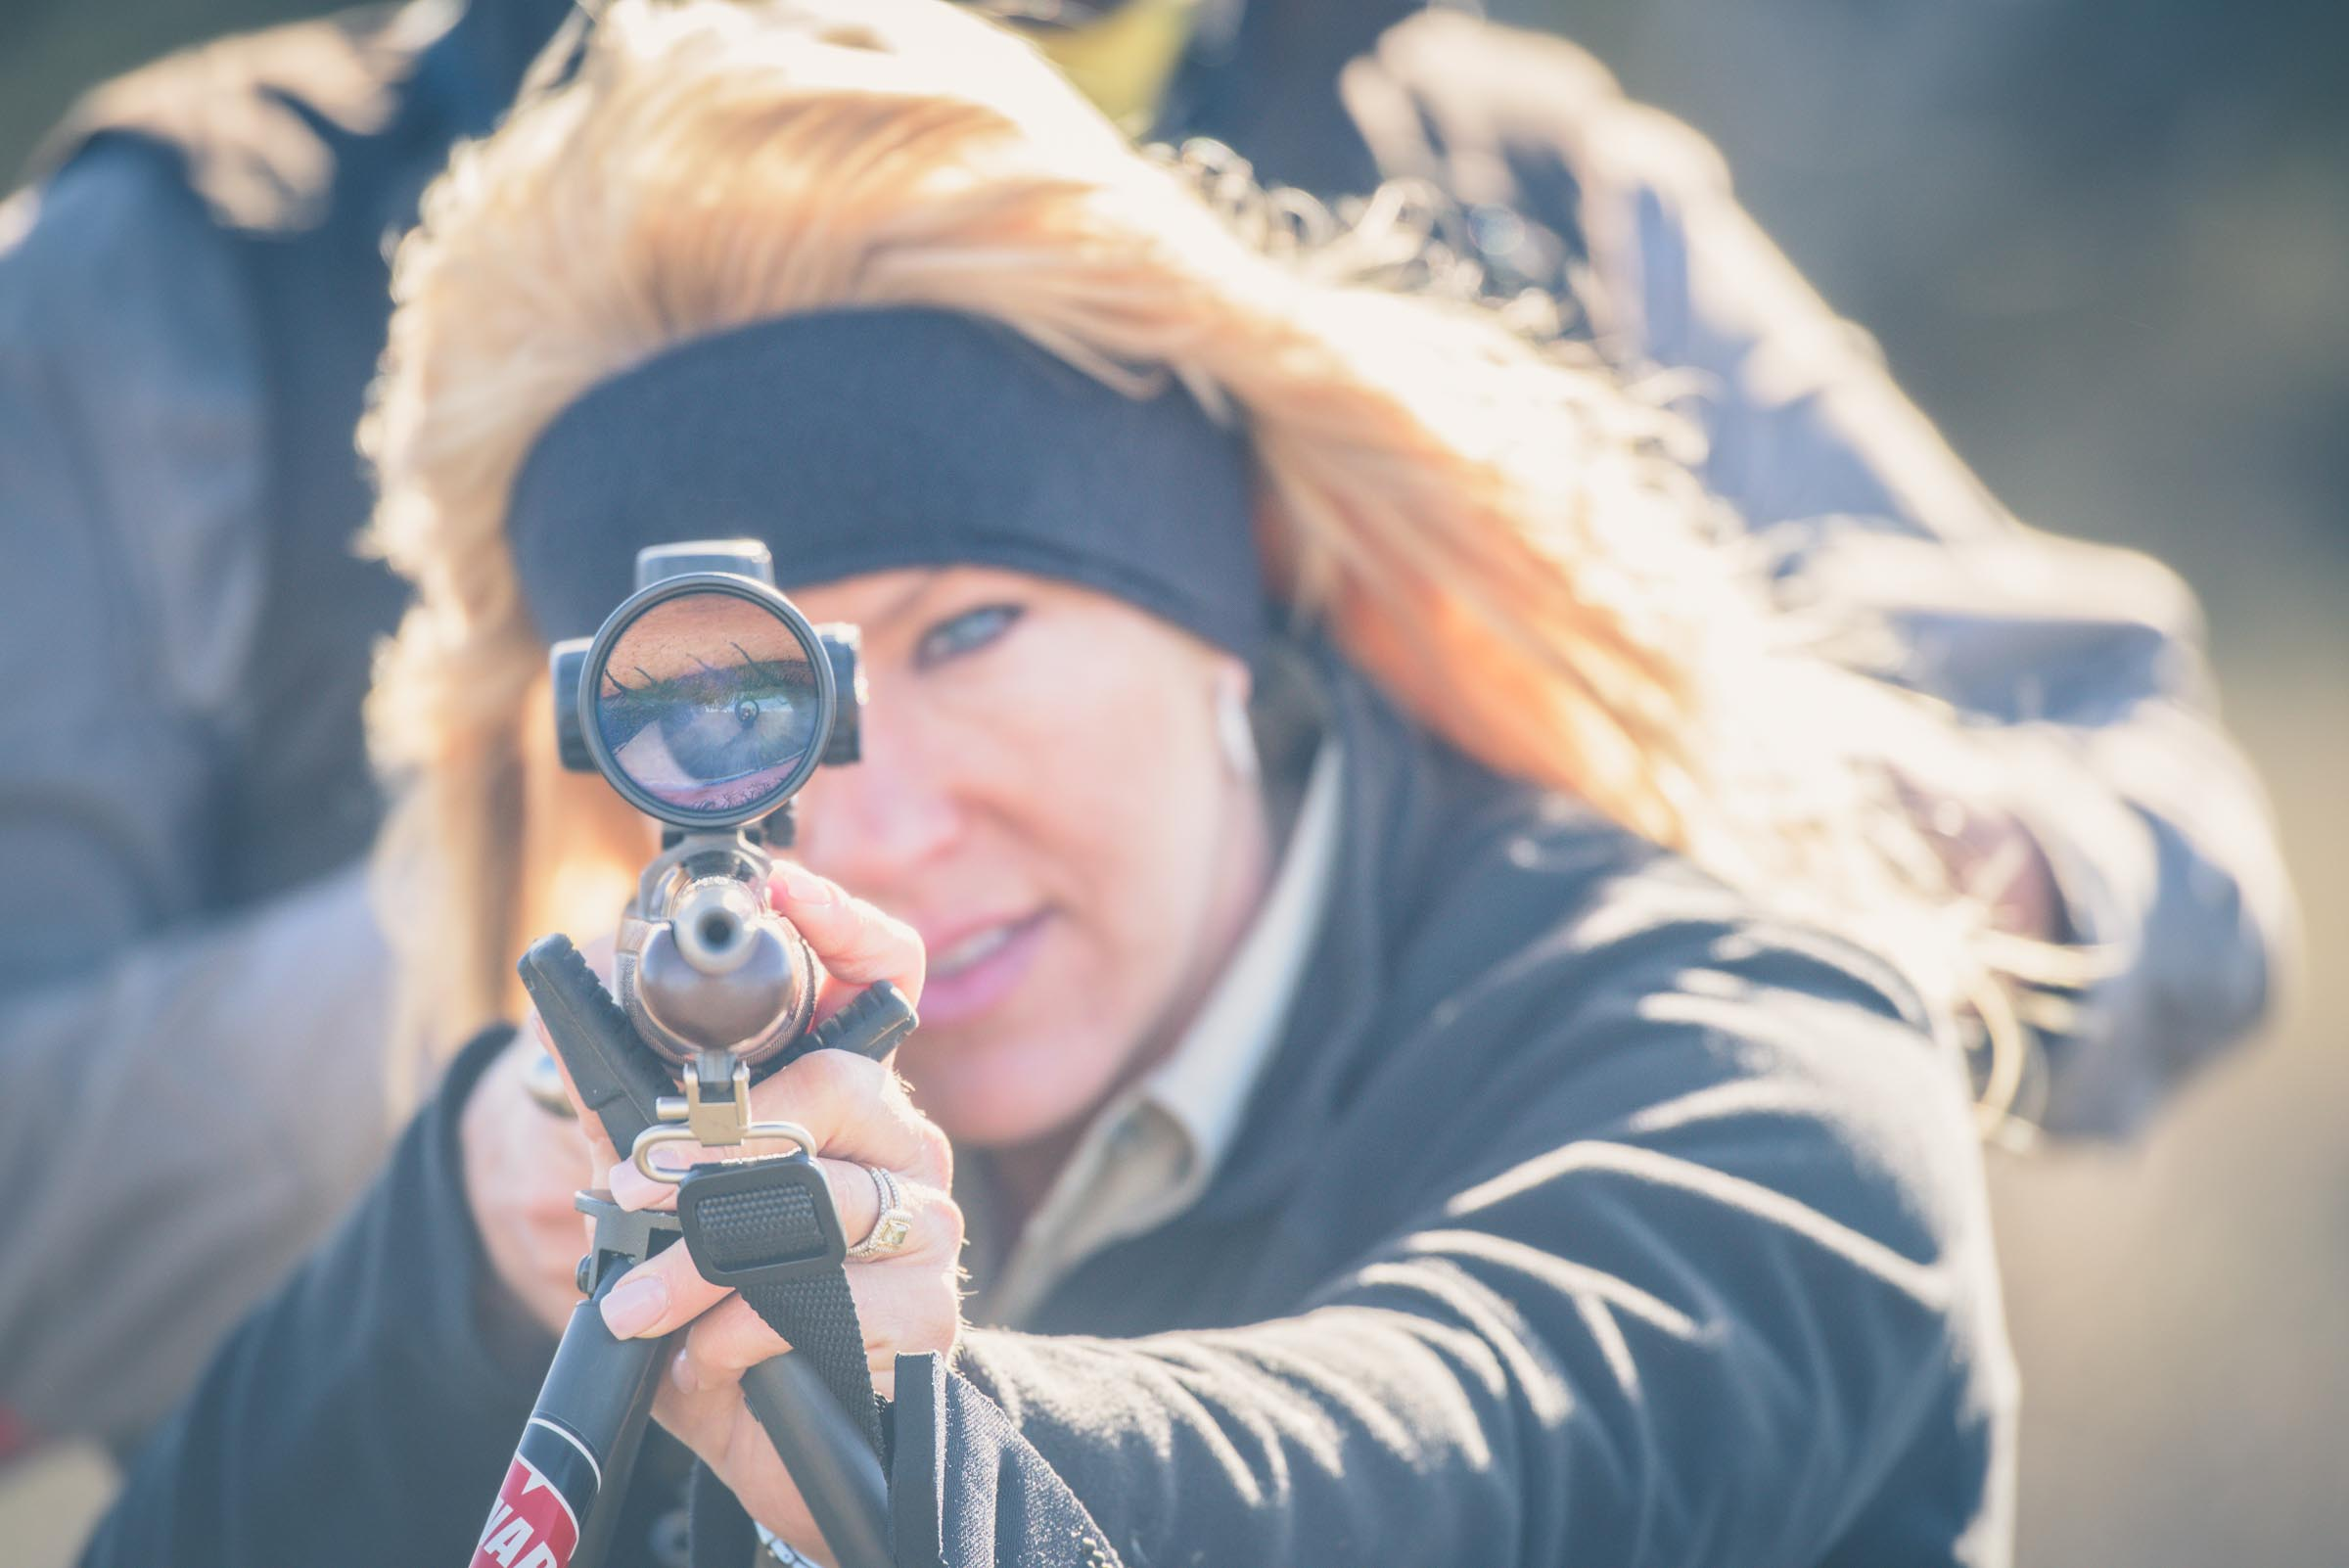 Olivia Opre taking aim while on a free range red stag hunt in La Pampa, Argentina. © Tony Bynum